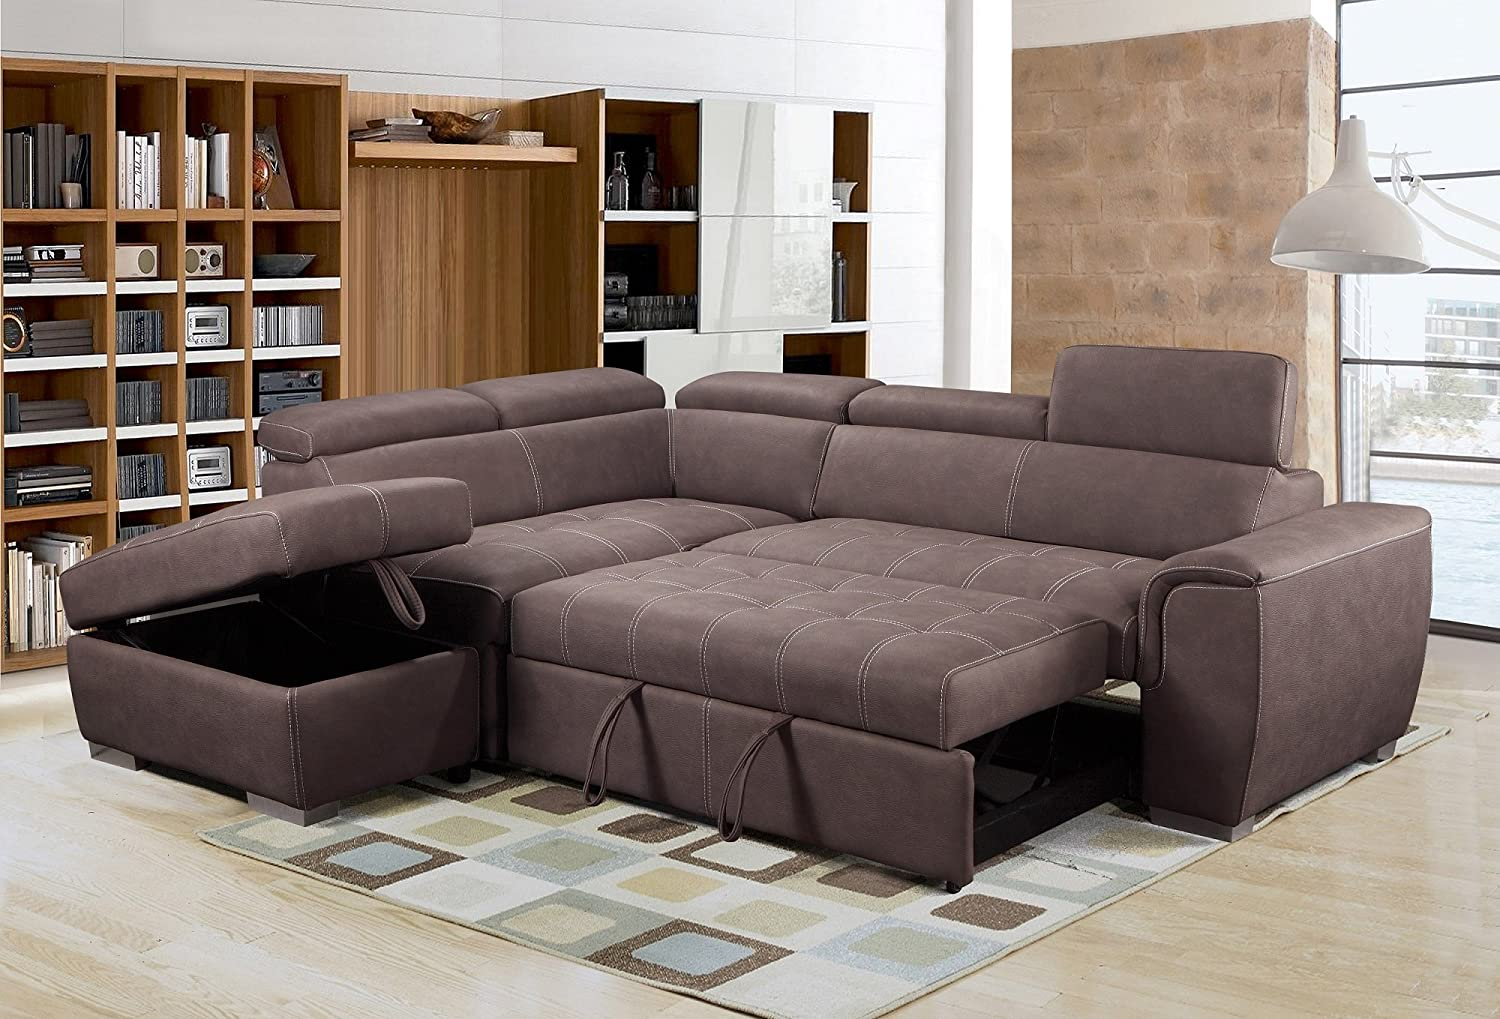 Rienzo Large Brown Fabric Suede Corner Sofa Bed With Tilting Headrest And  Storage Ottoman (Left Hand Facing)